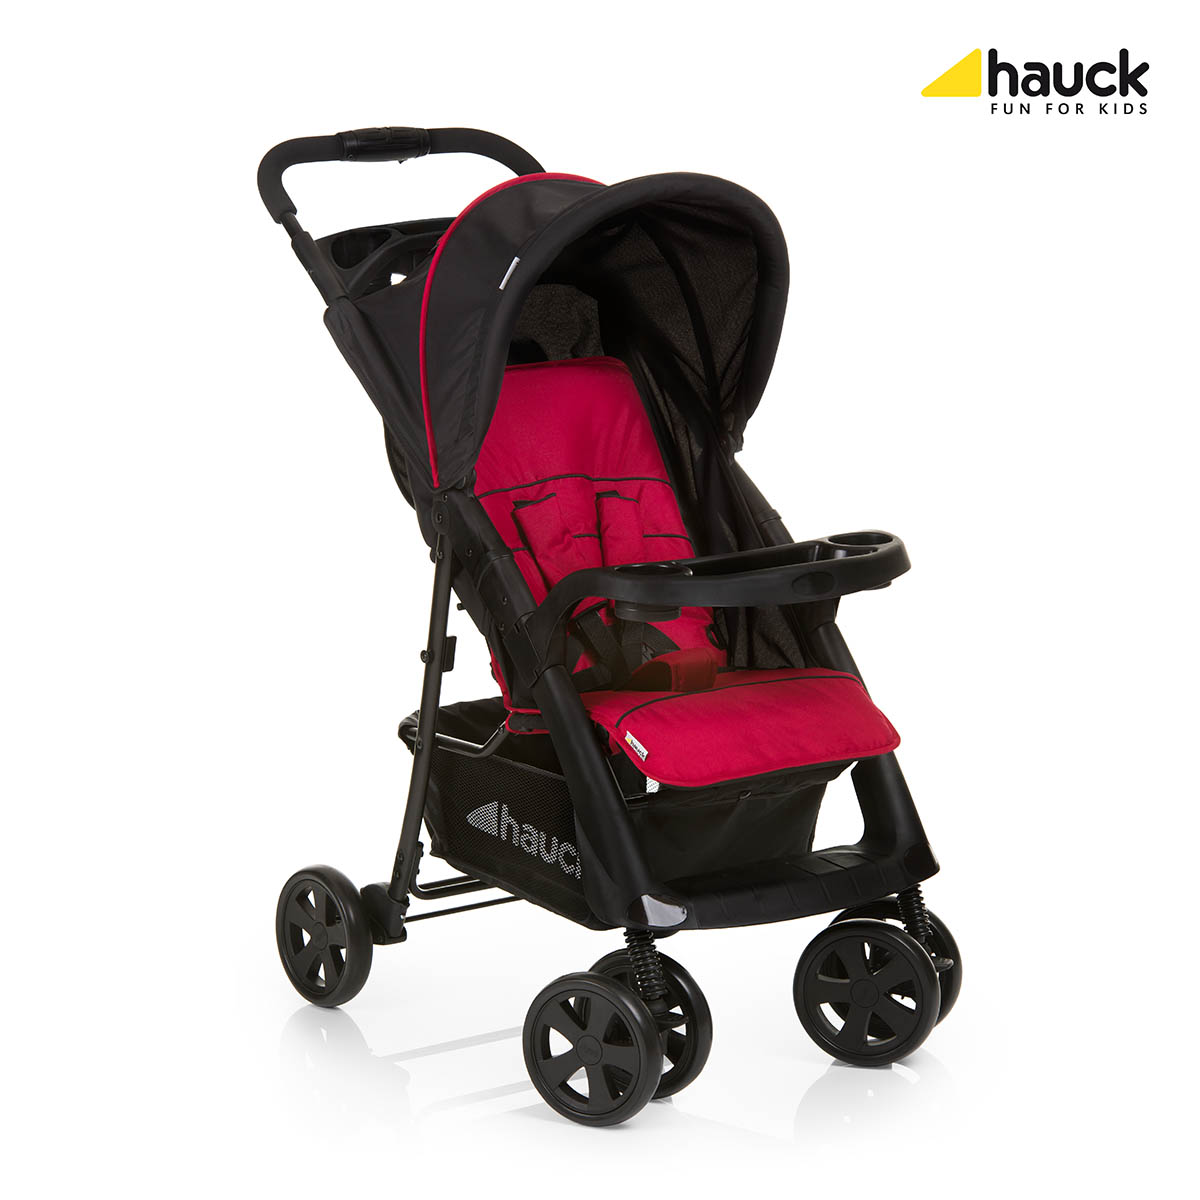 hauck pushchair neo ii 2016 black red buy at kidsroom. Black Bedroom Furniture Sets. Home Design Ideas